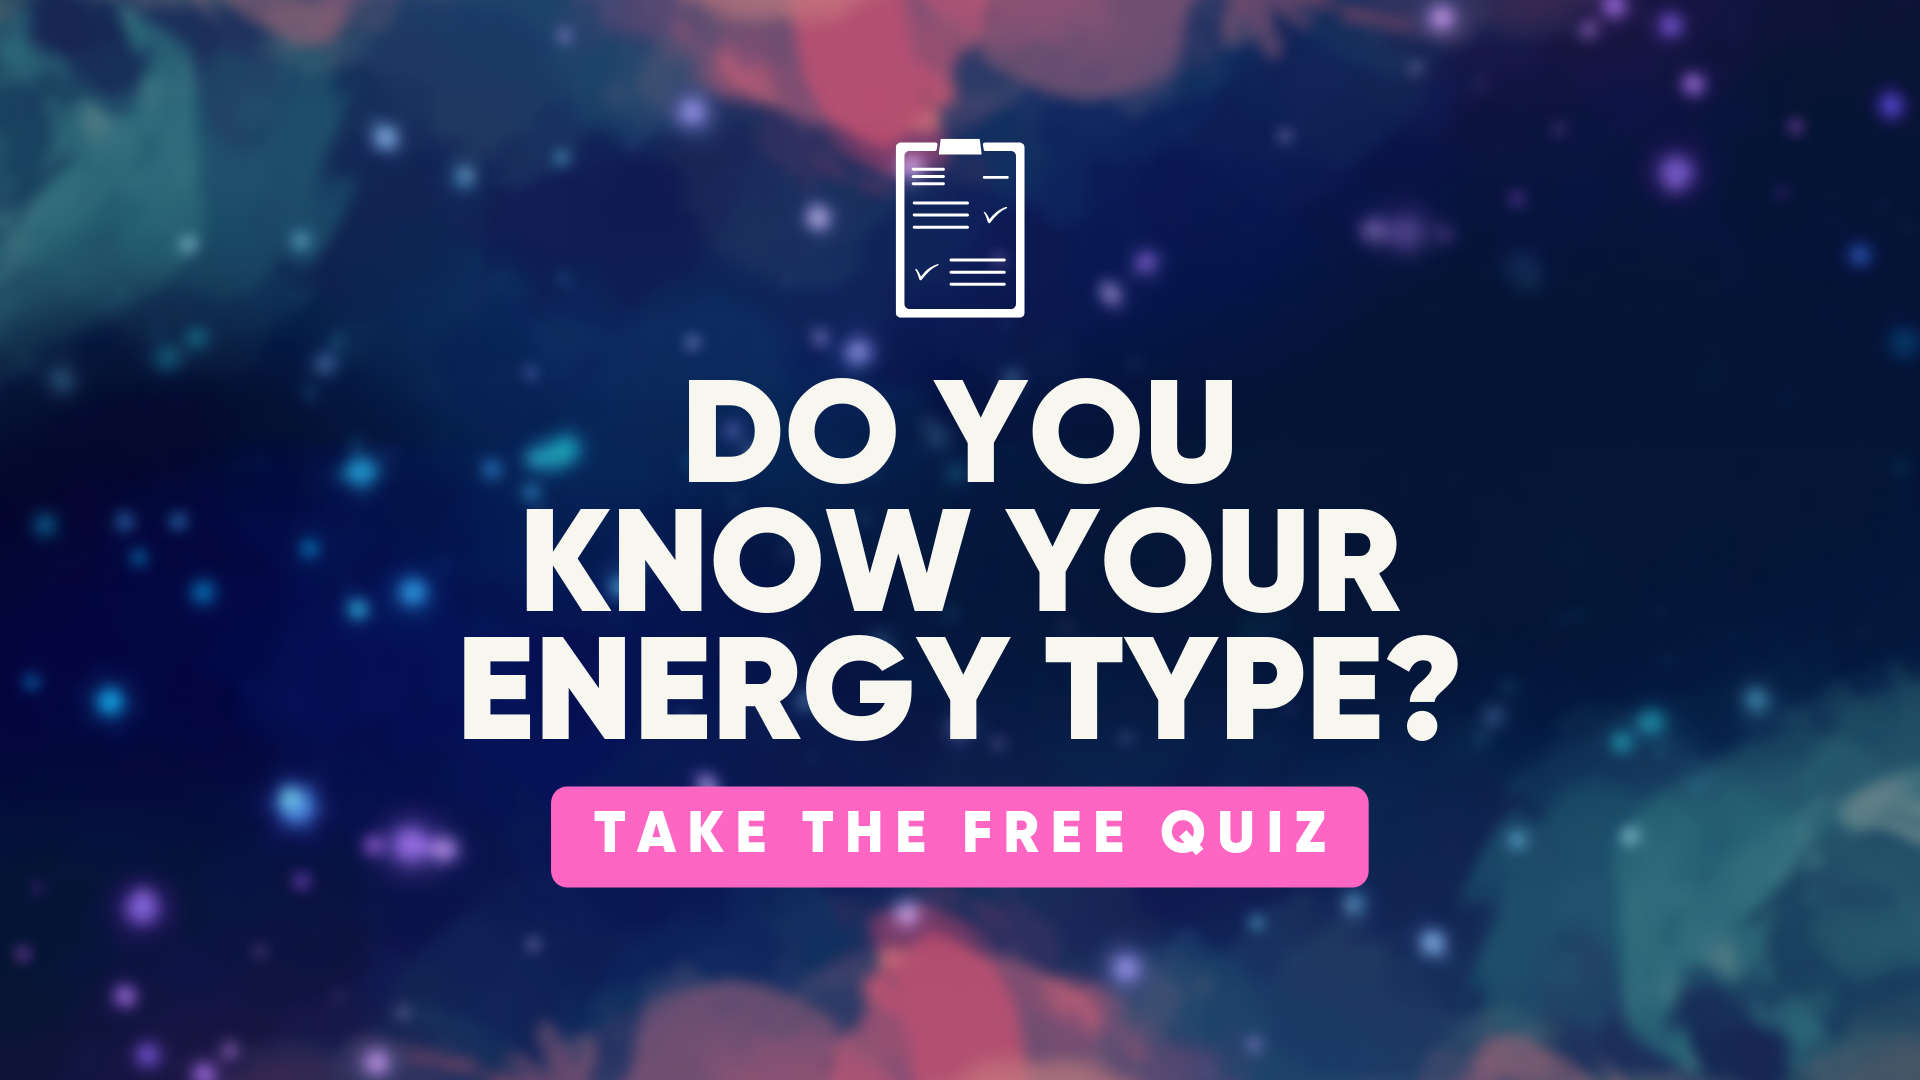 Everybody has an energy type. Find yours!